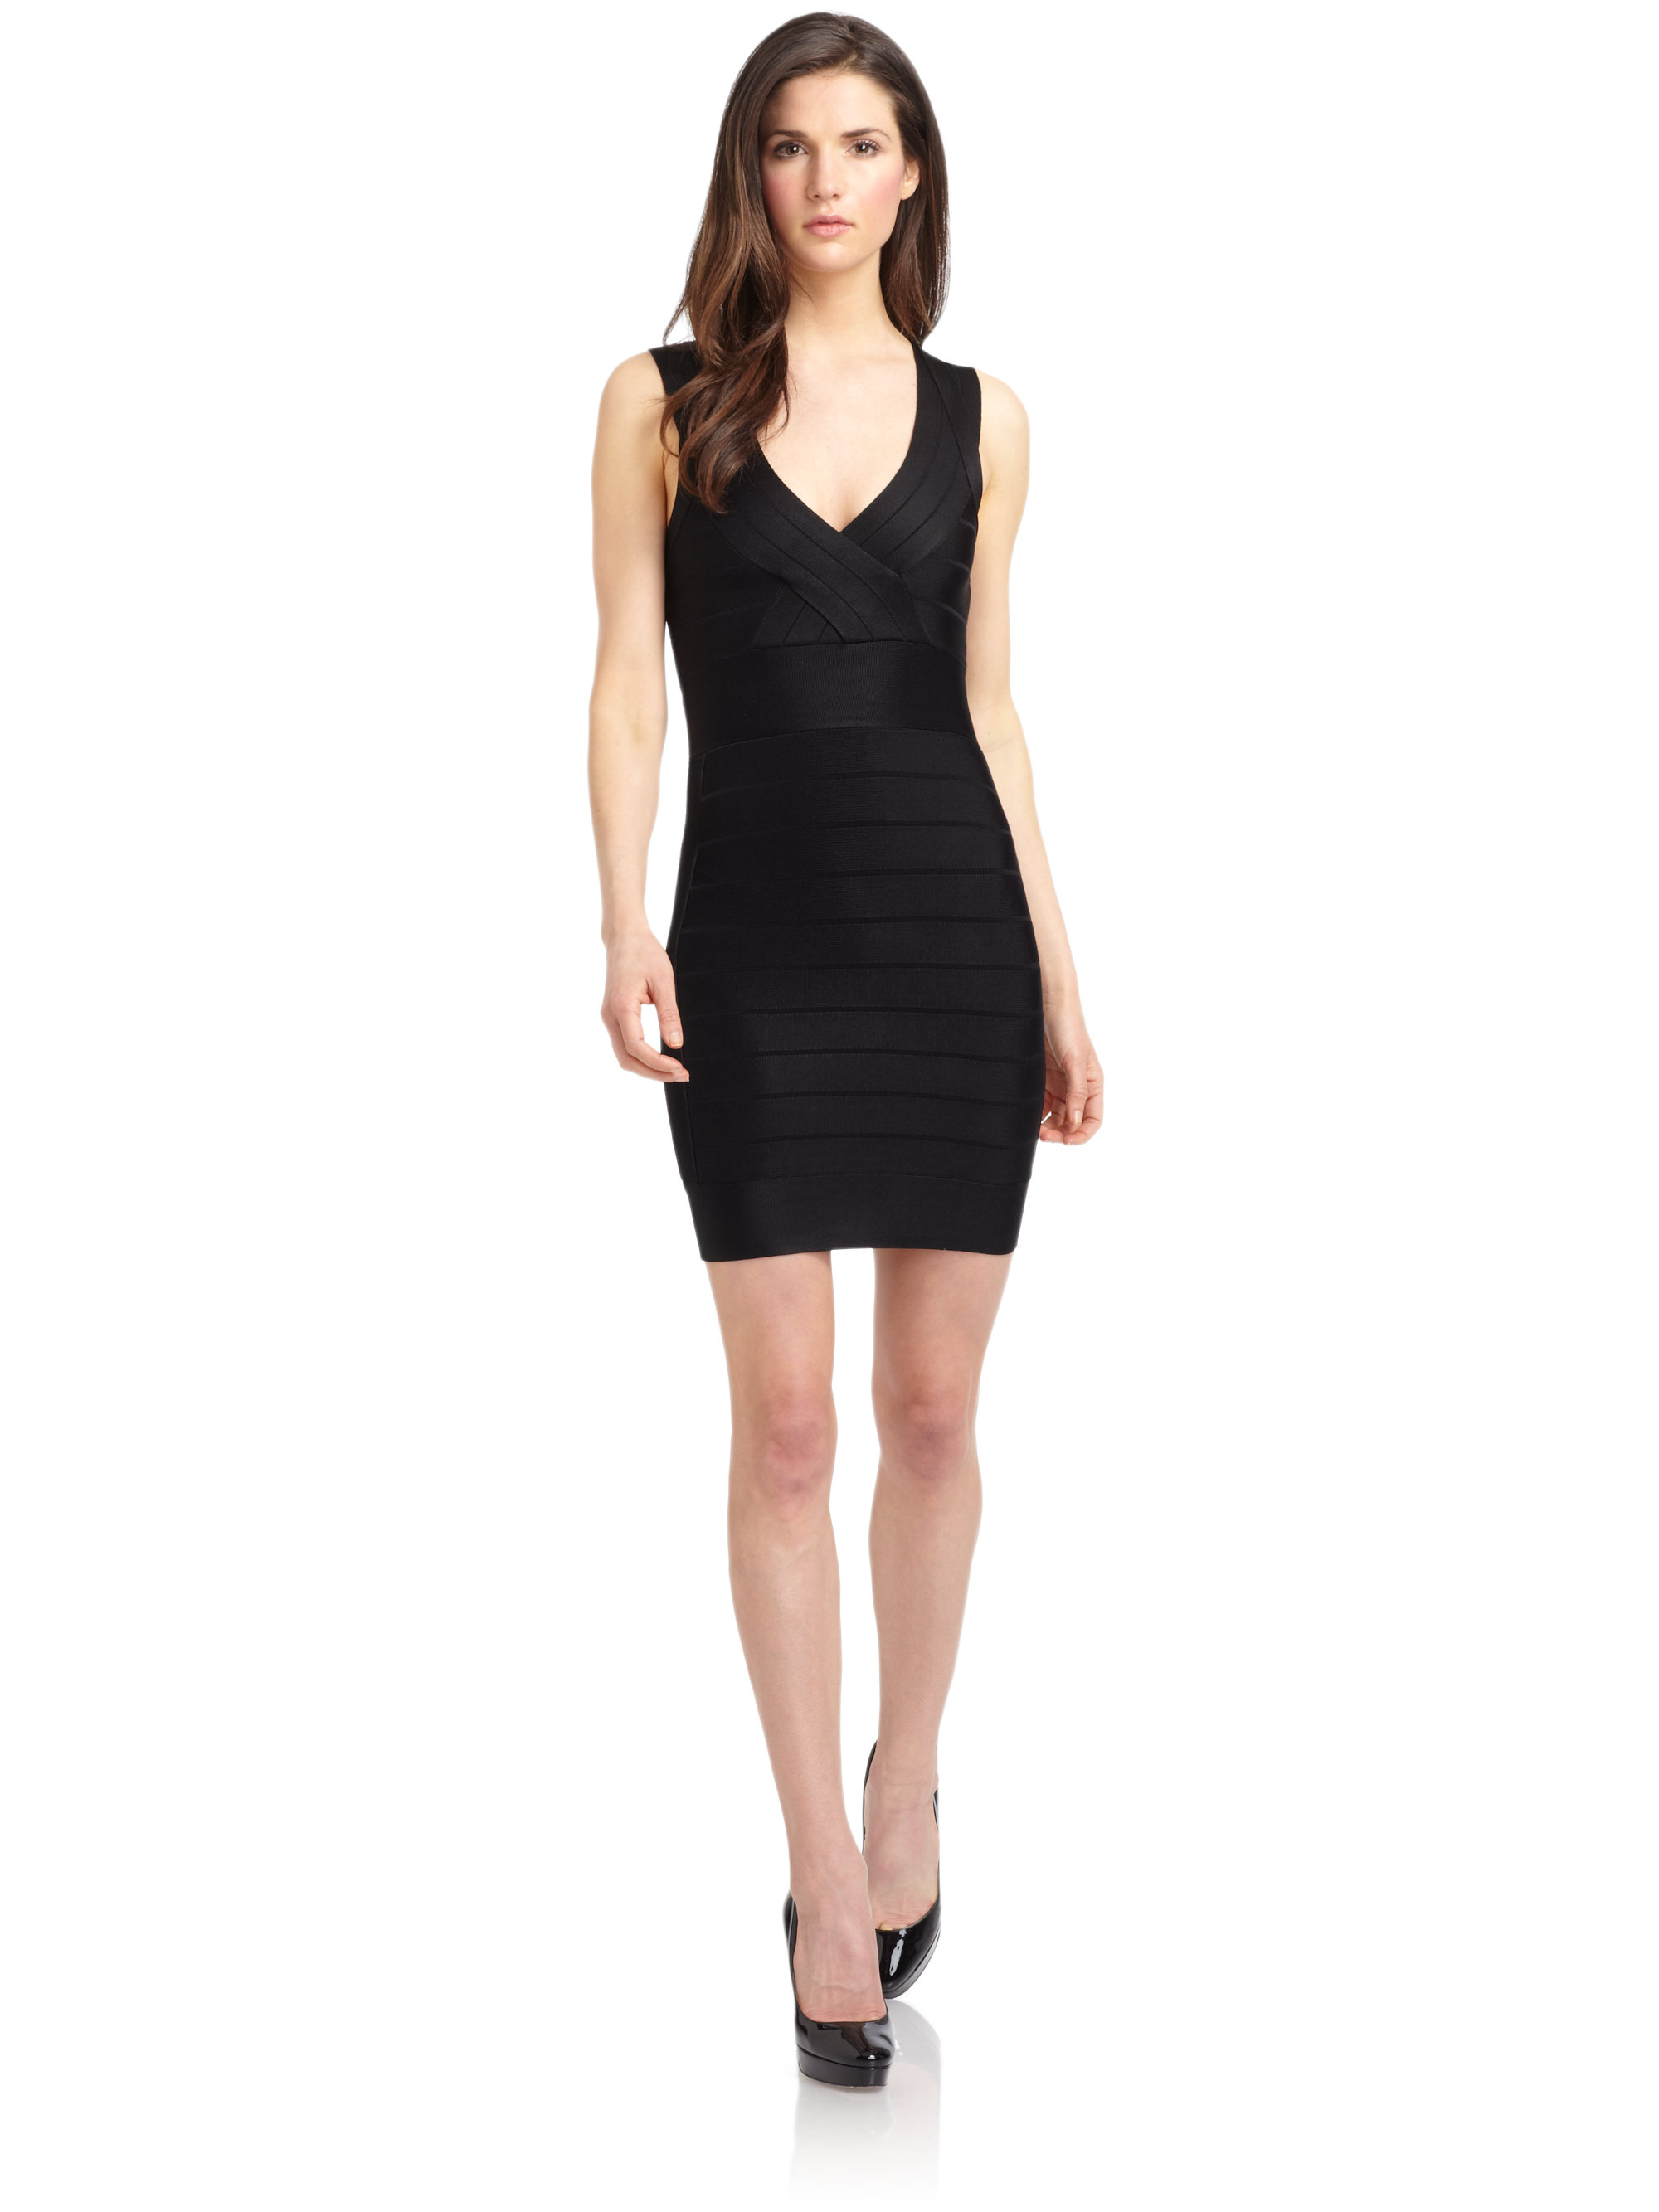 Lyst - French Connection Fast Spotlight Bandage Dress in Black